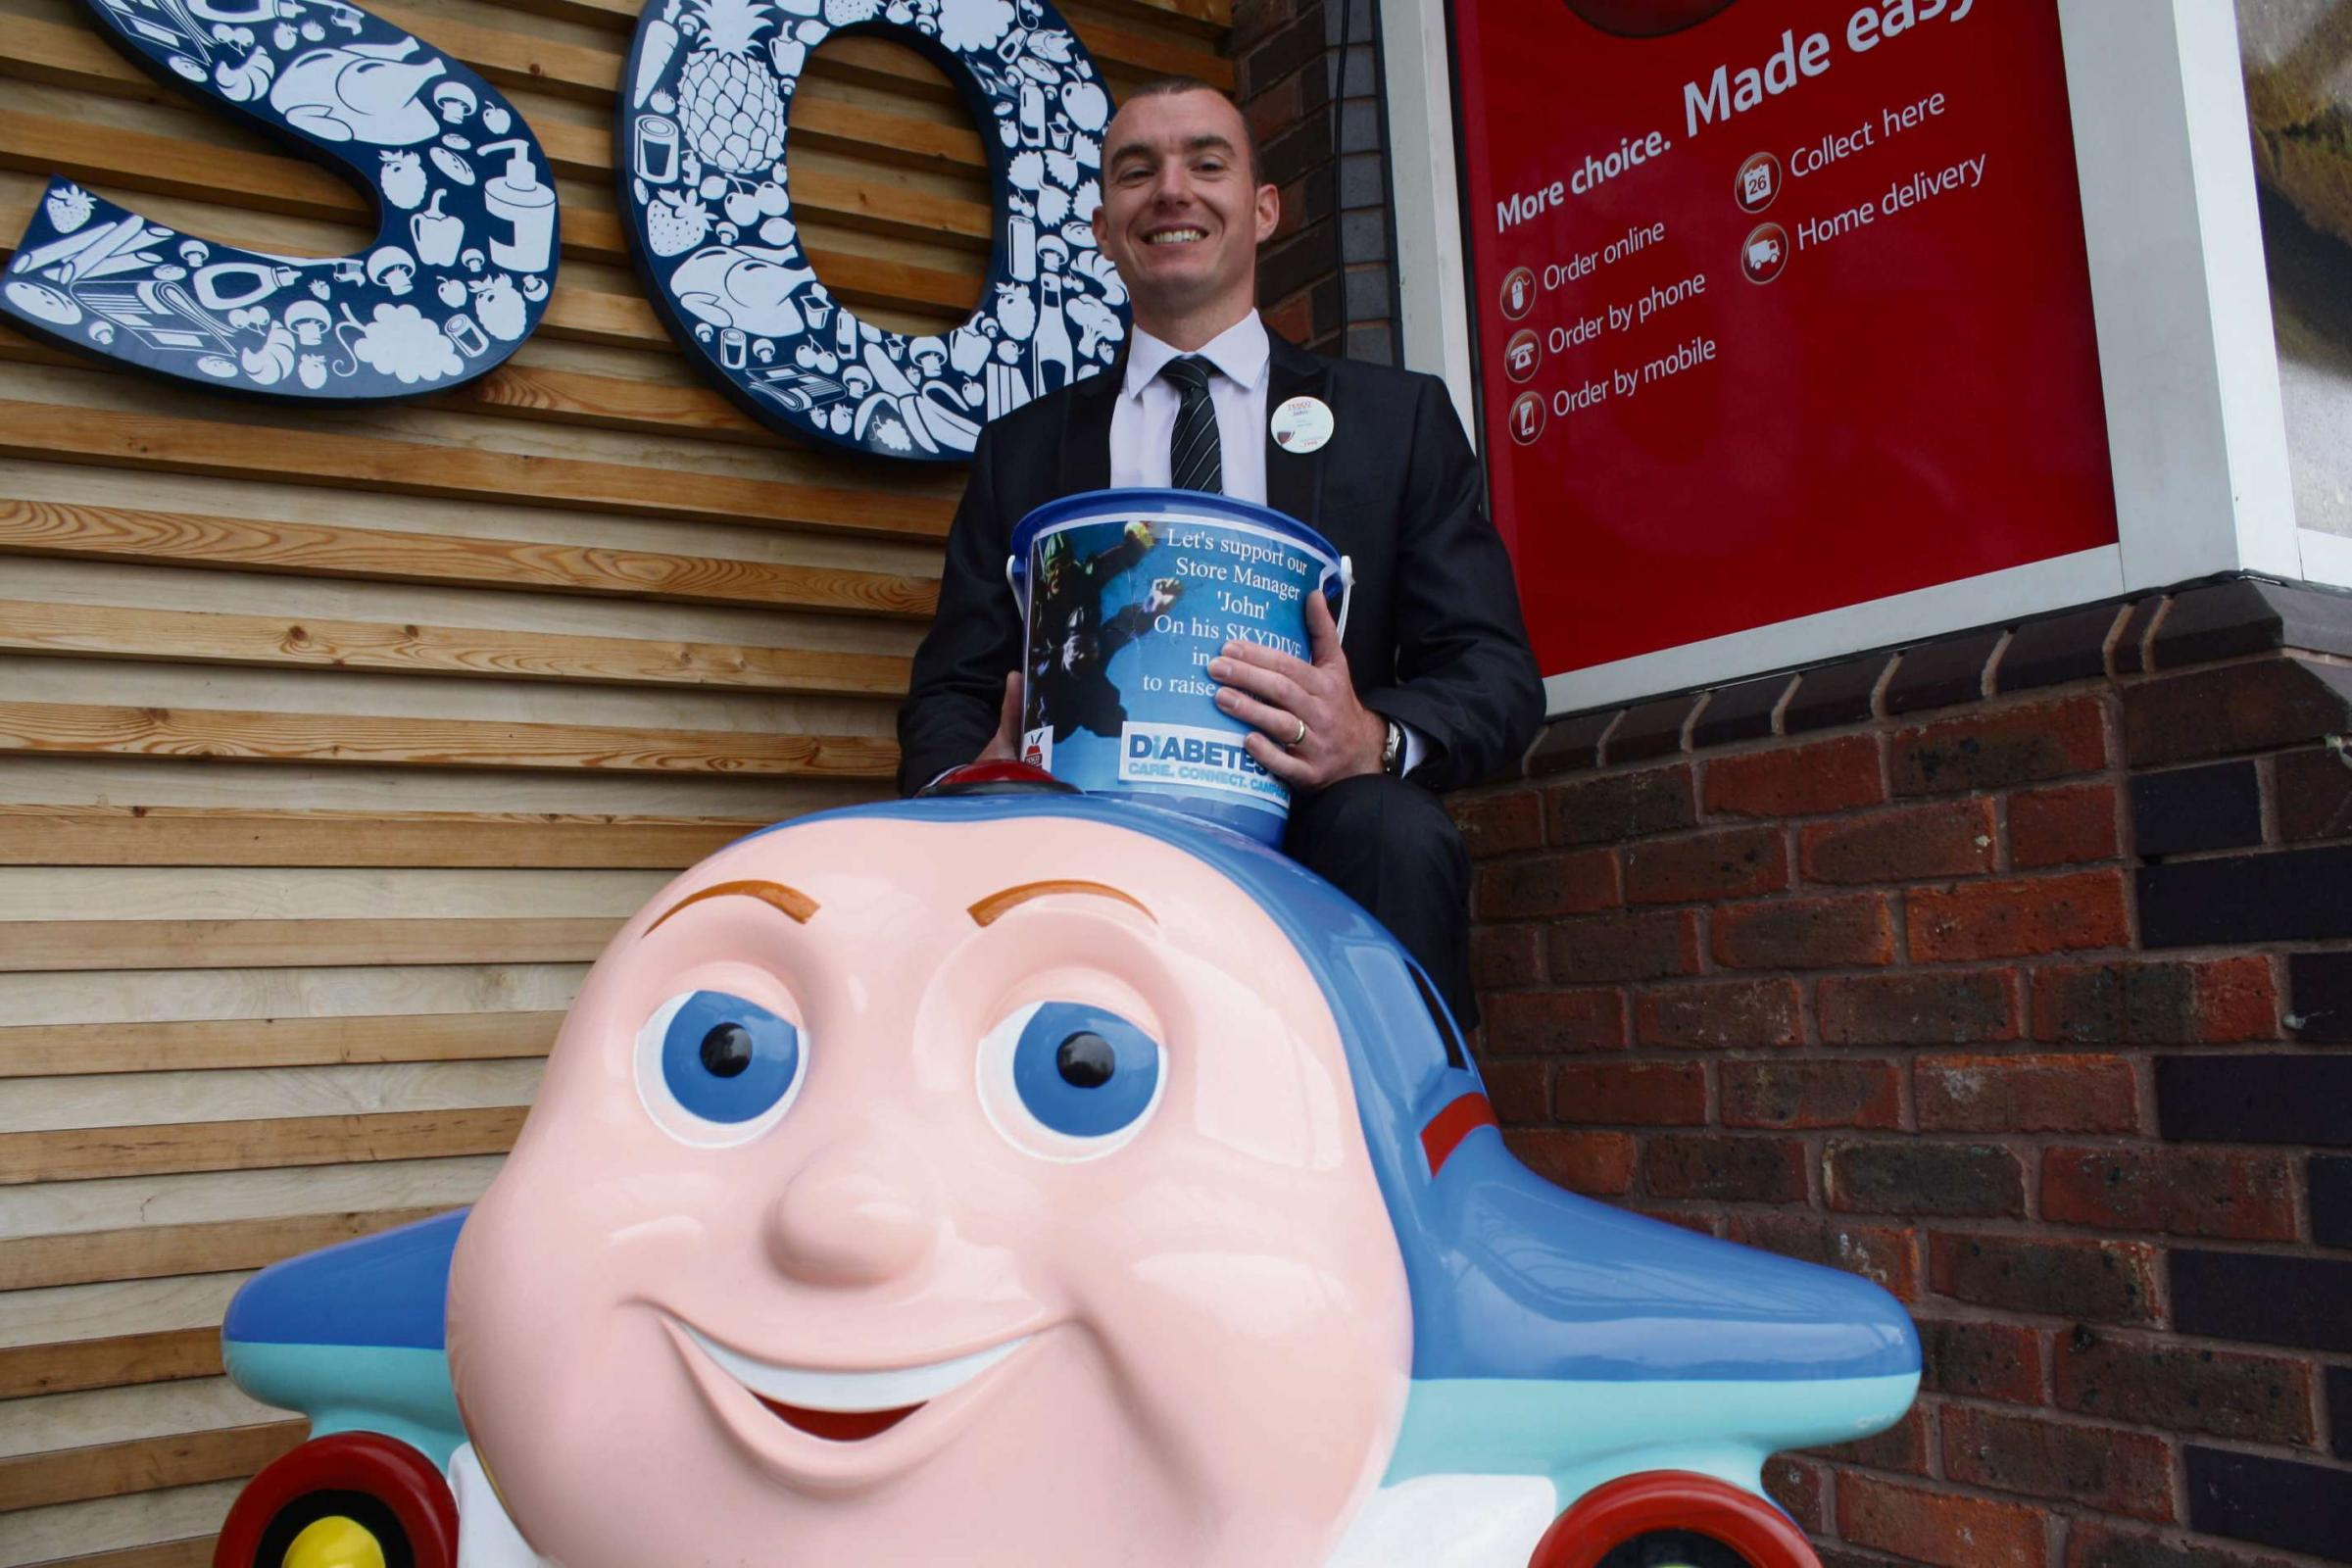 High flying store manager gives charity a lift